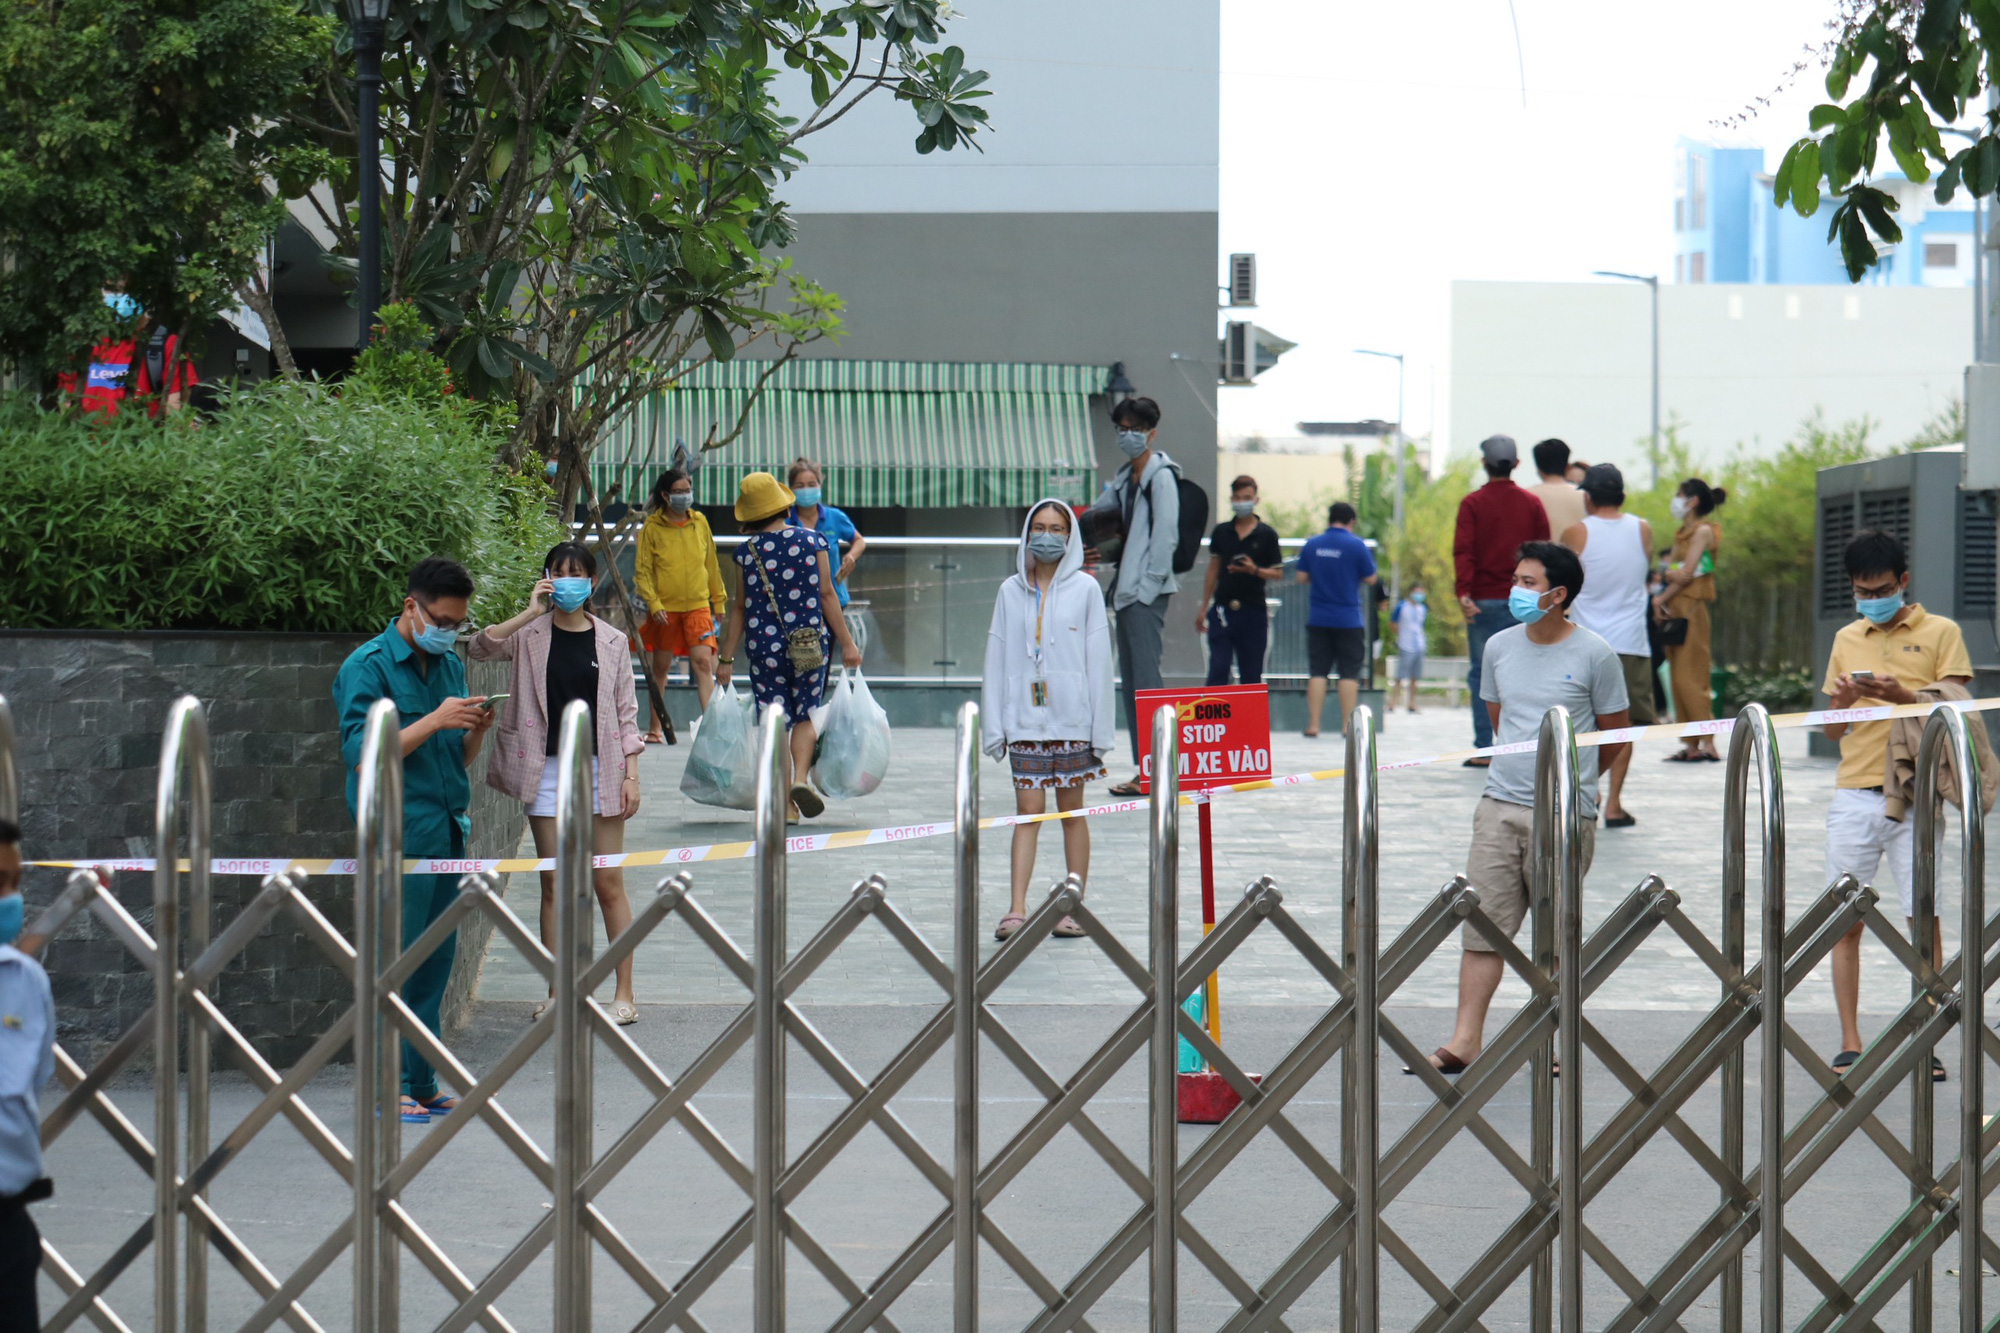 12 suspected COVID-19 cases including factory workers recorded in southern Vietnamese province